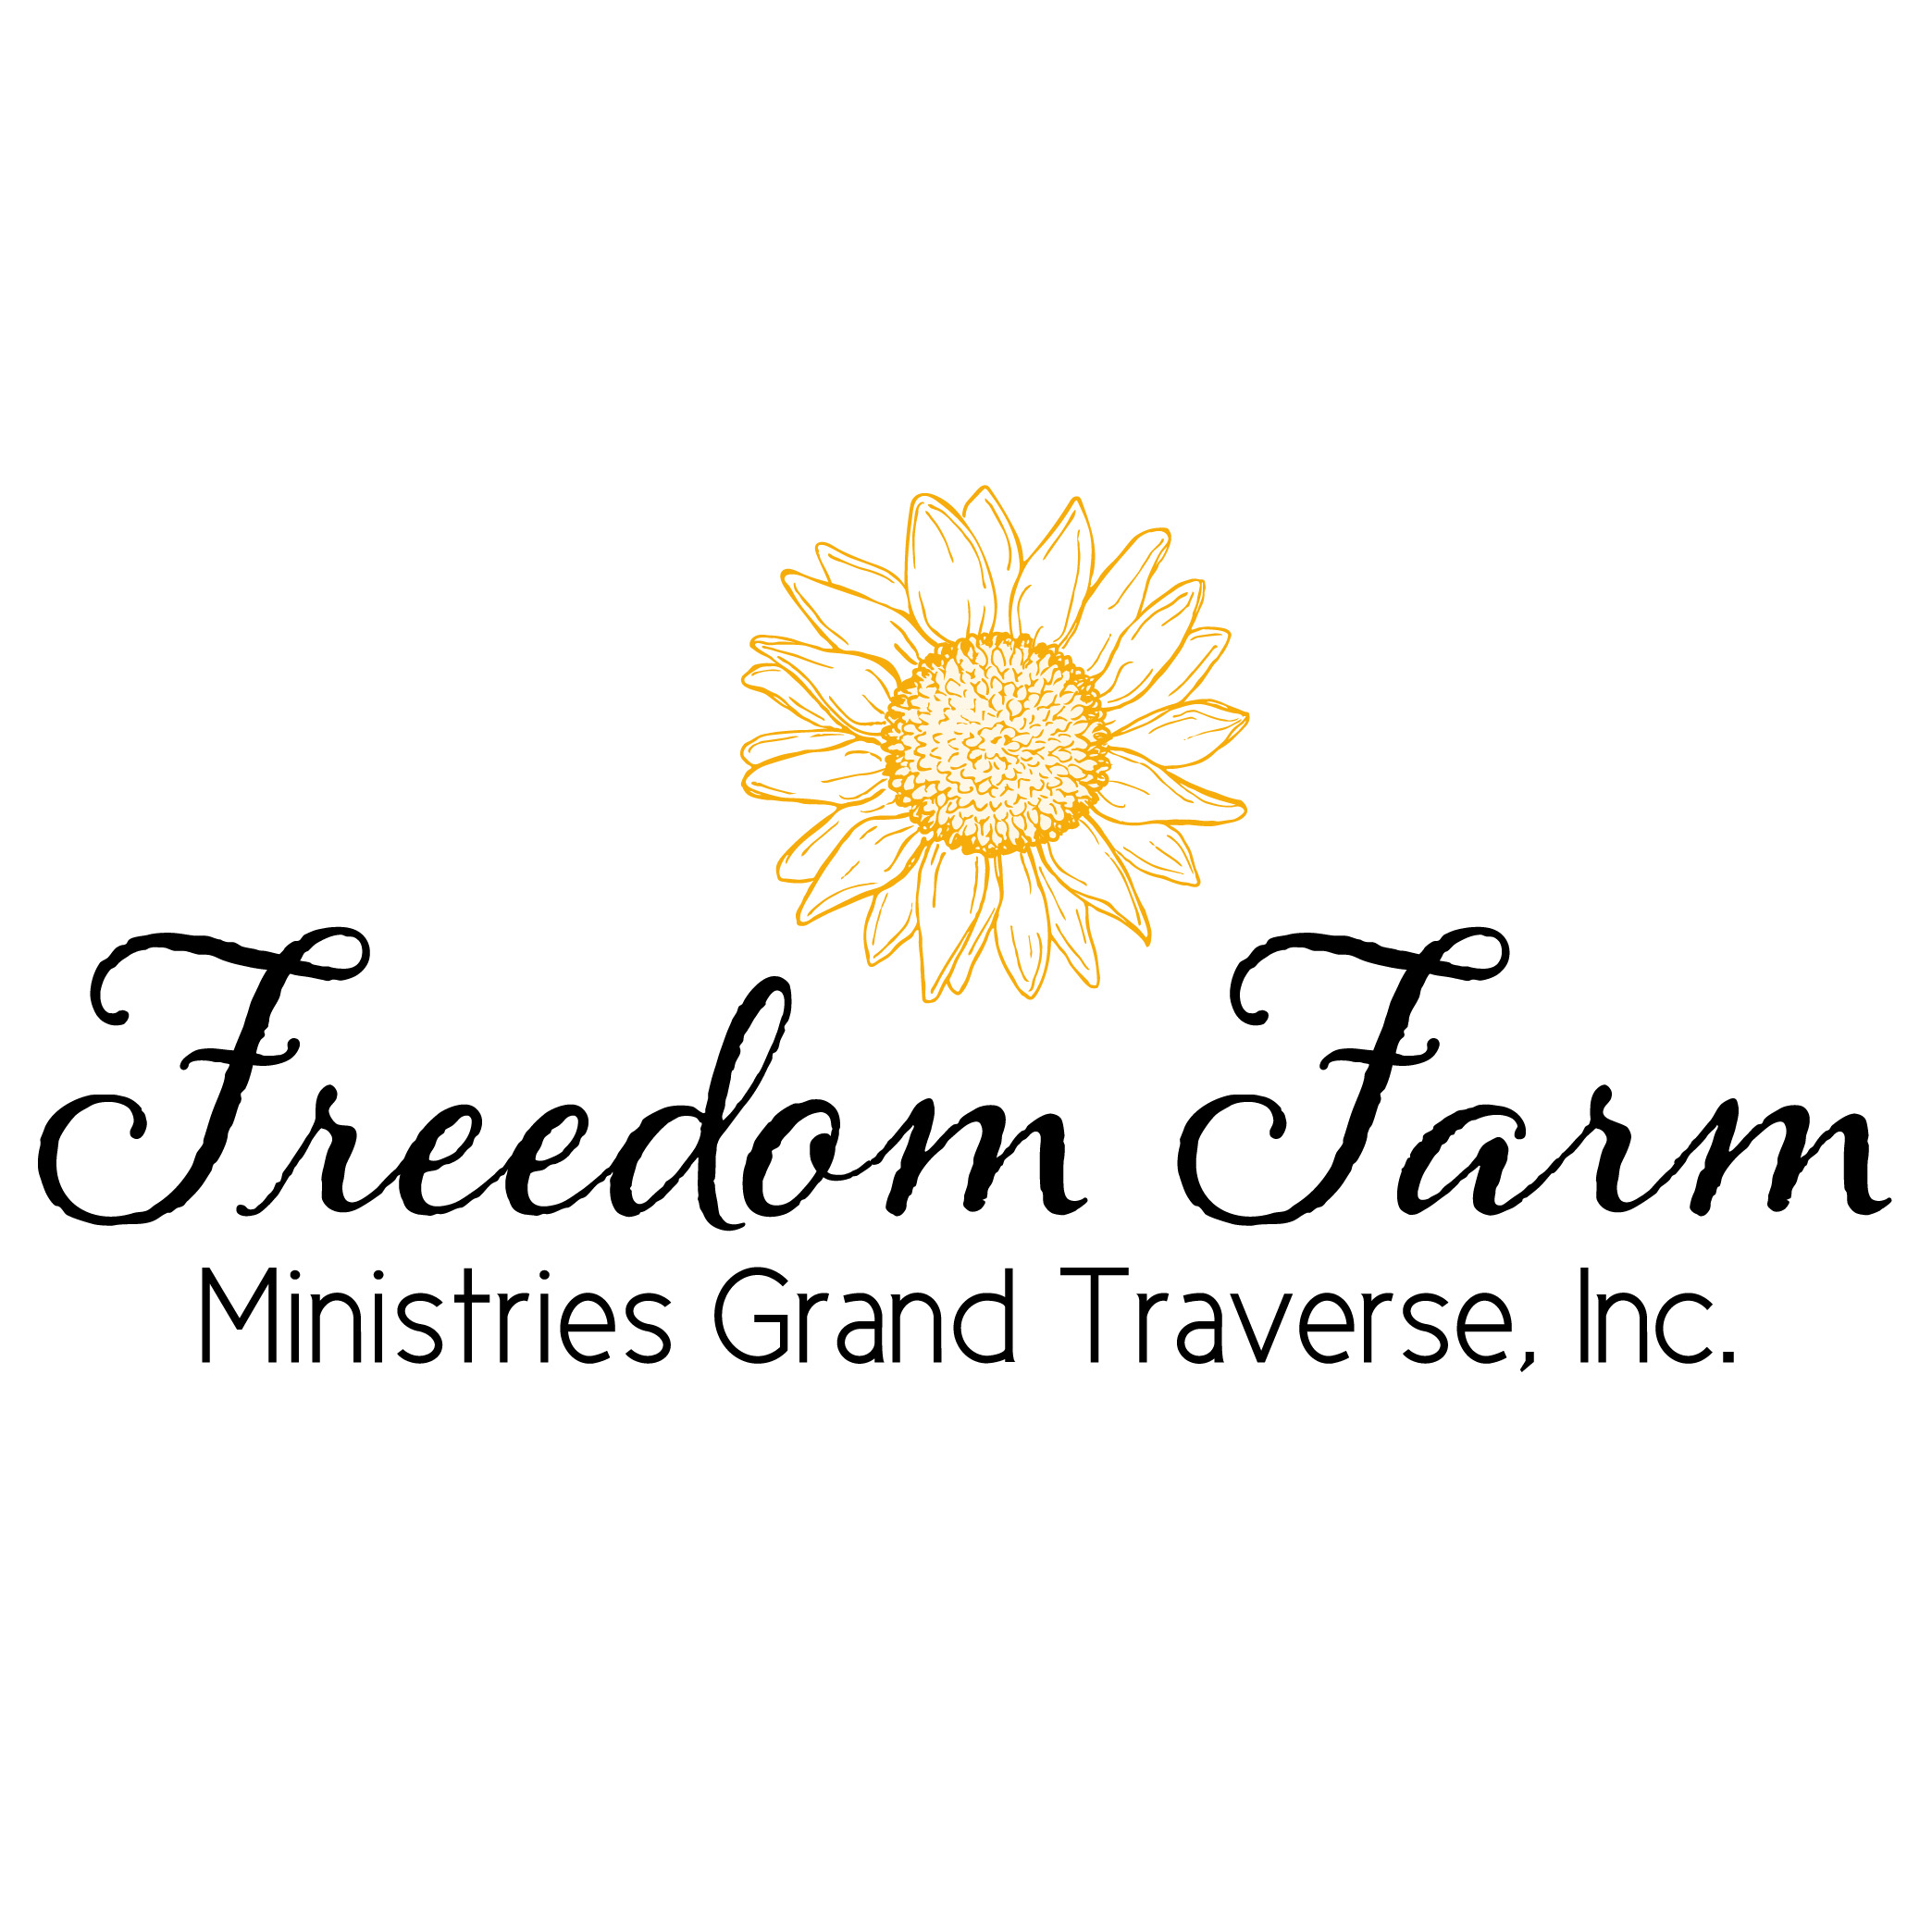 LOGO DESIGN: - Freedom Farm's brand is symbolic of the women they serve. Sunflowers follow the sun and are a symbol of hope and beauty, which is what Freedom Farm aims to bring to its community. Accented with a deep brown script font, the logo perfectly represents the nature of the hands-on therapy provided by the ministry.